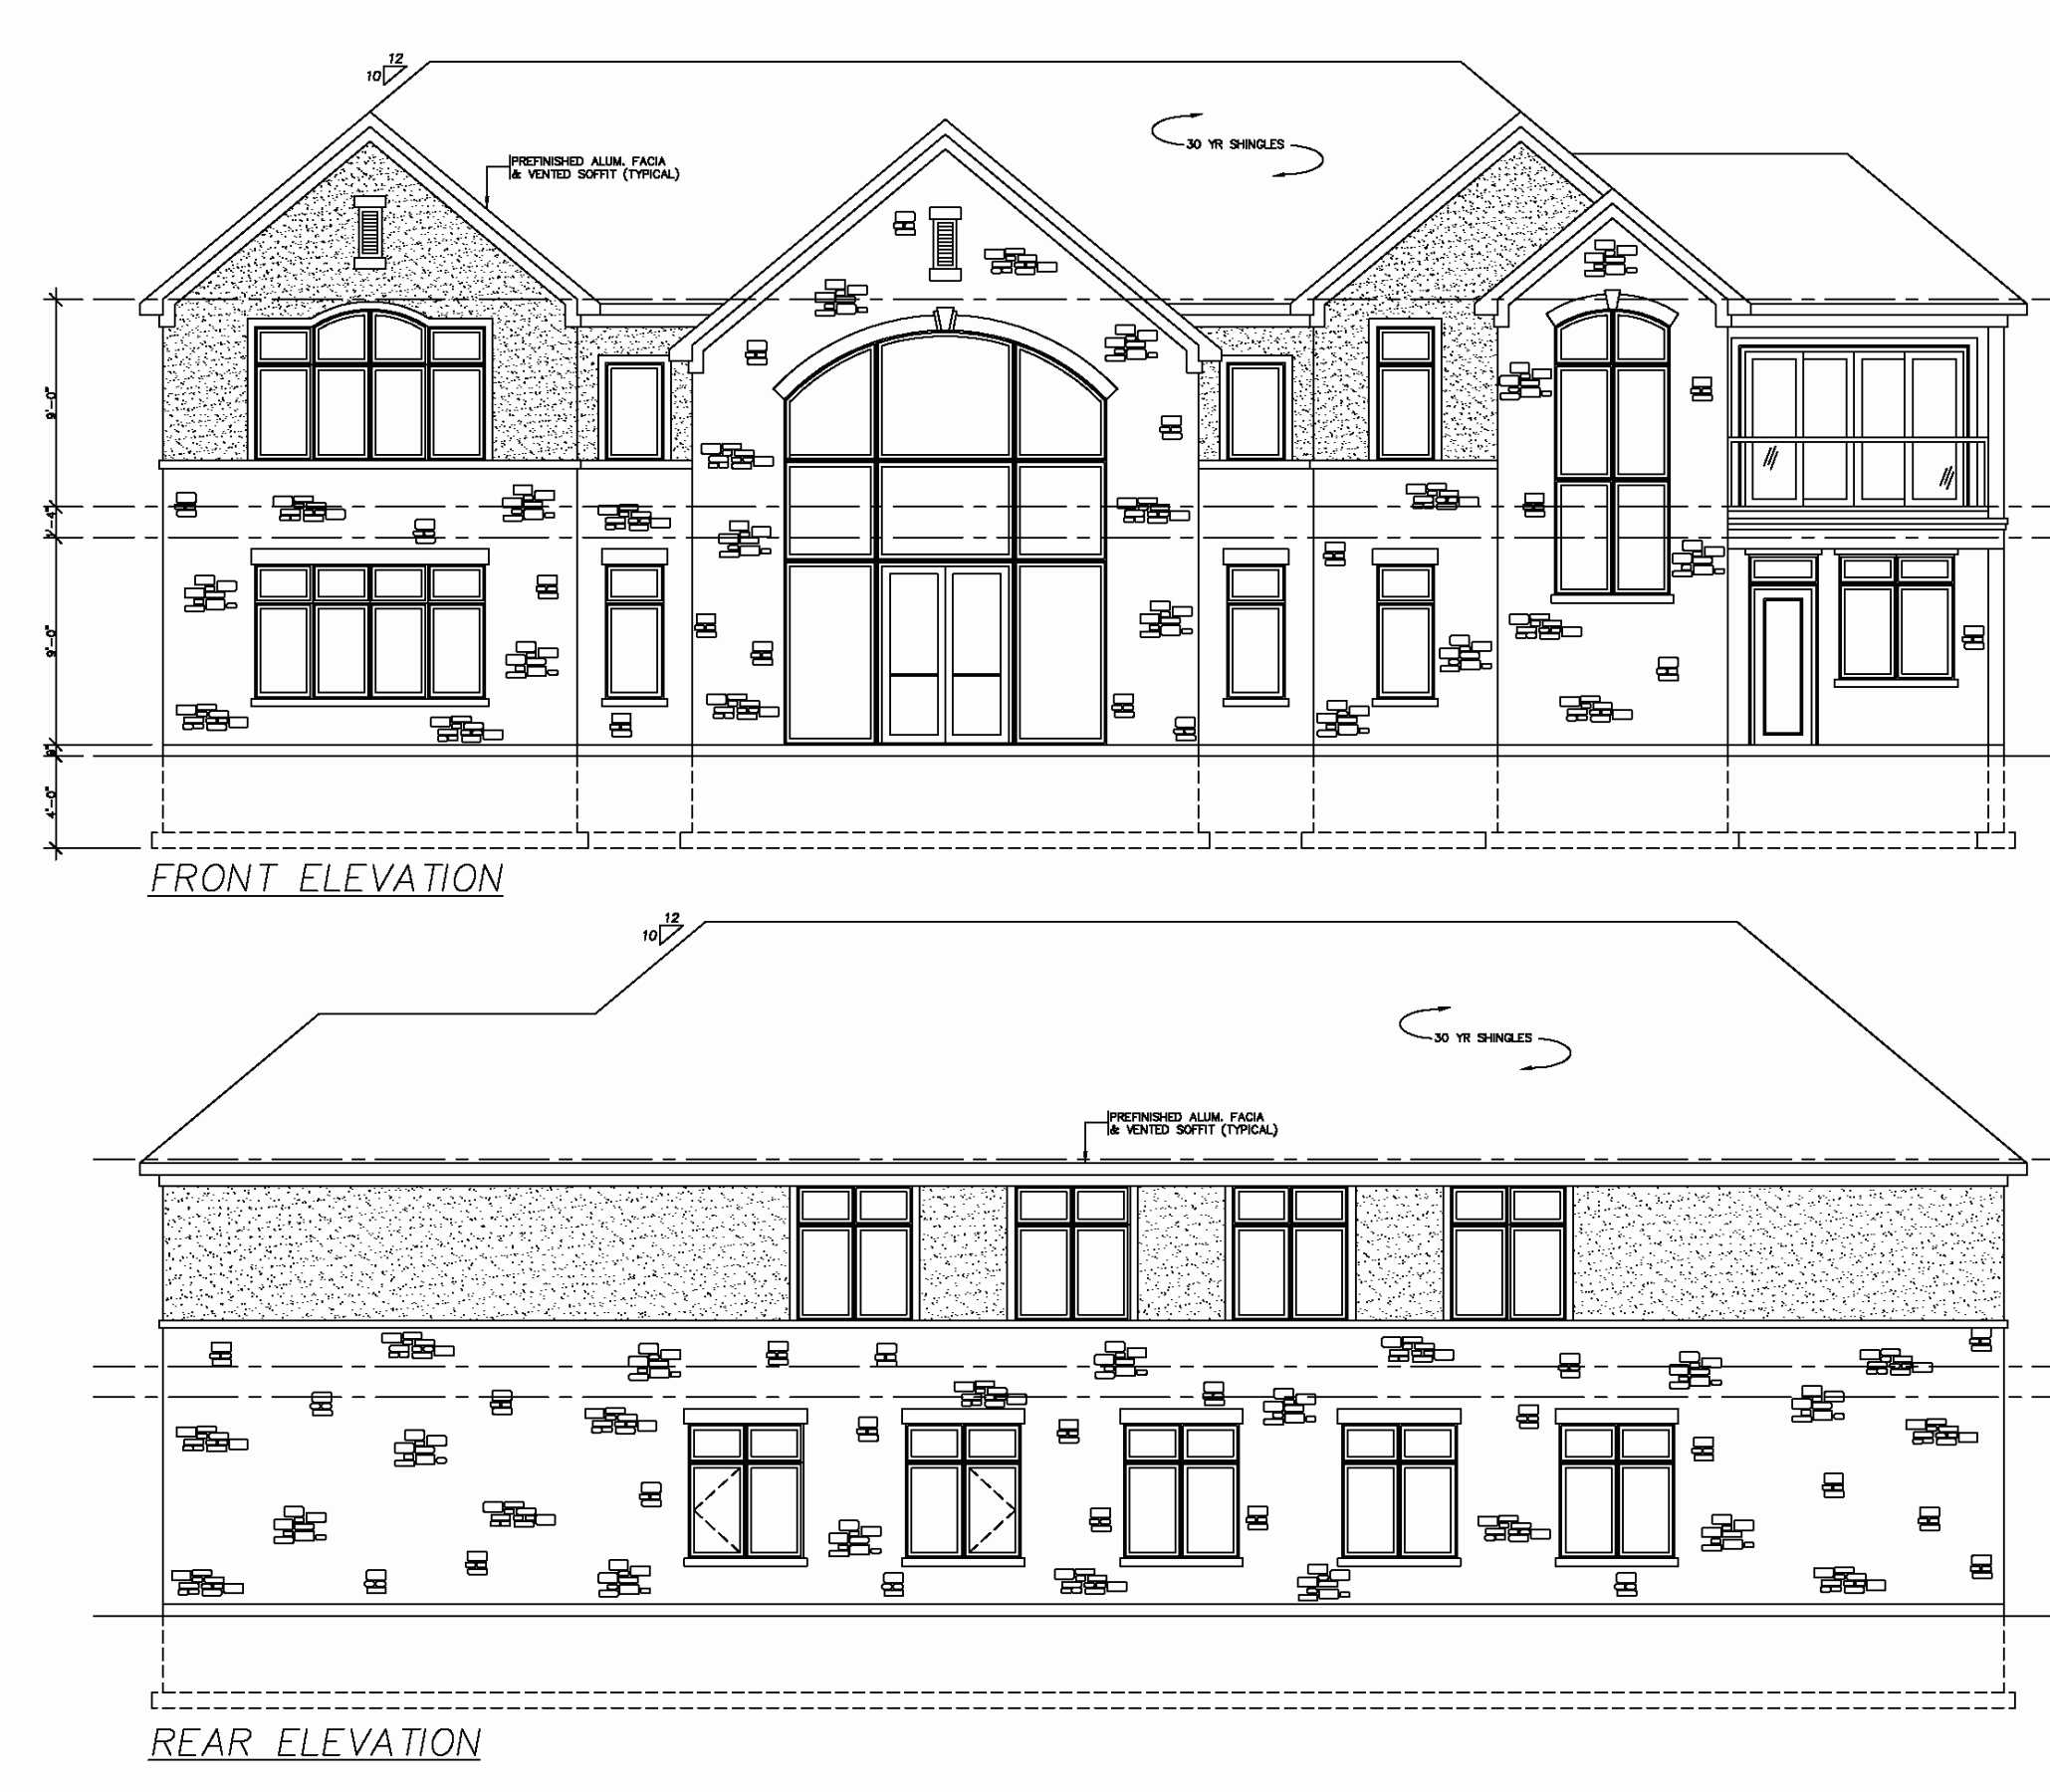 Present And Future Needs Fp Elevation1 Oke Woodsmith Building 1986 Jaguar Xj6 Wiring Diagram Systems Inc